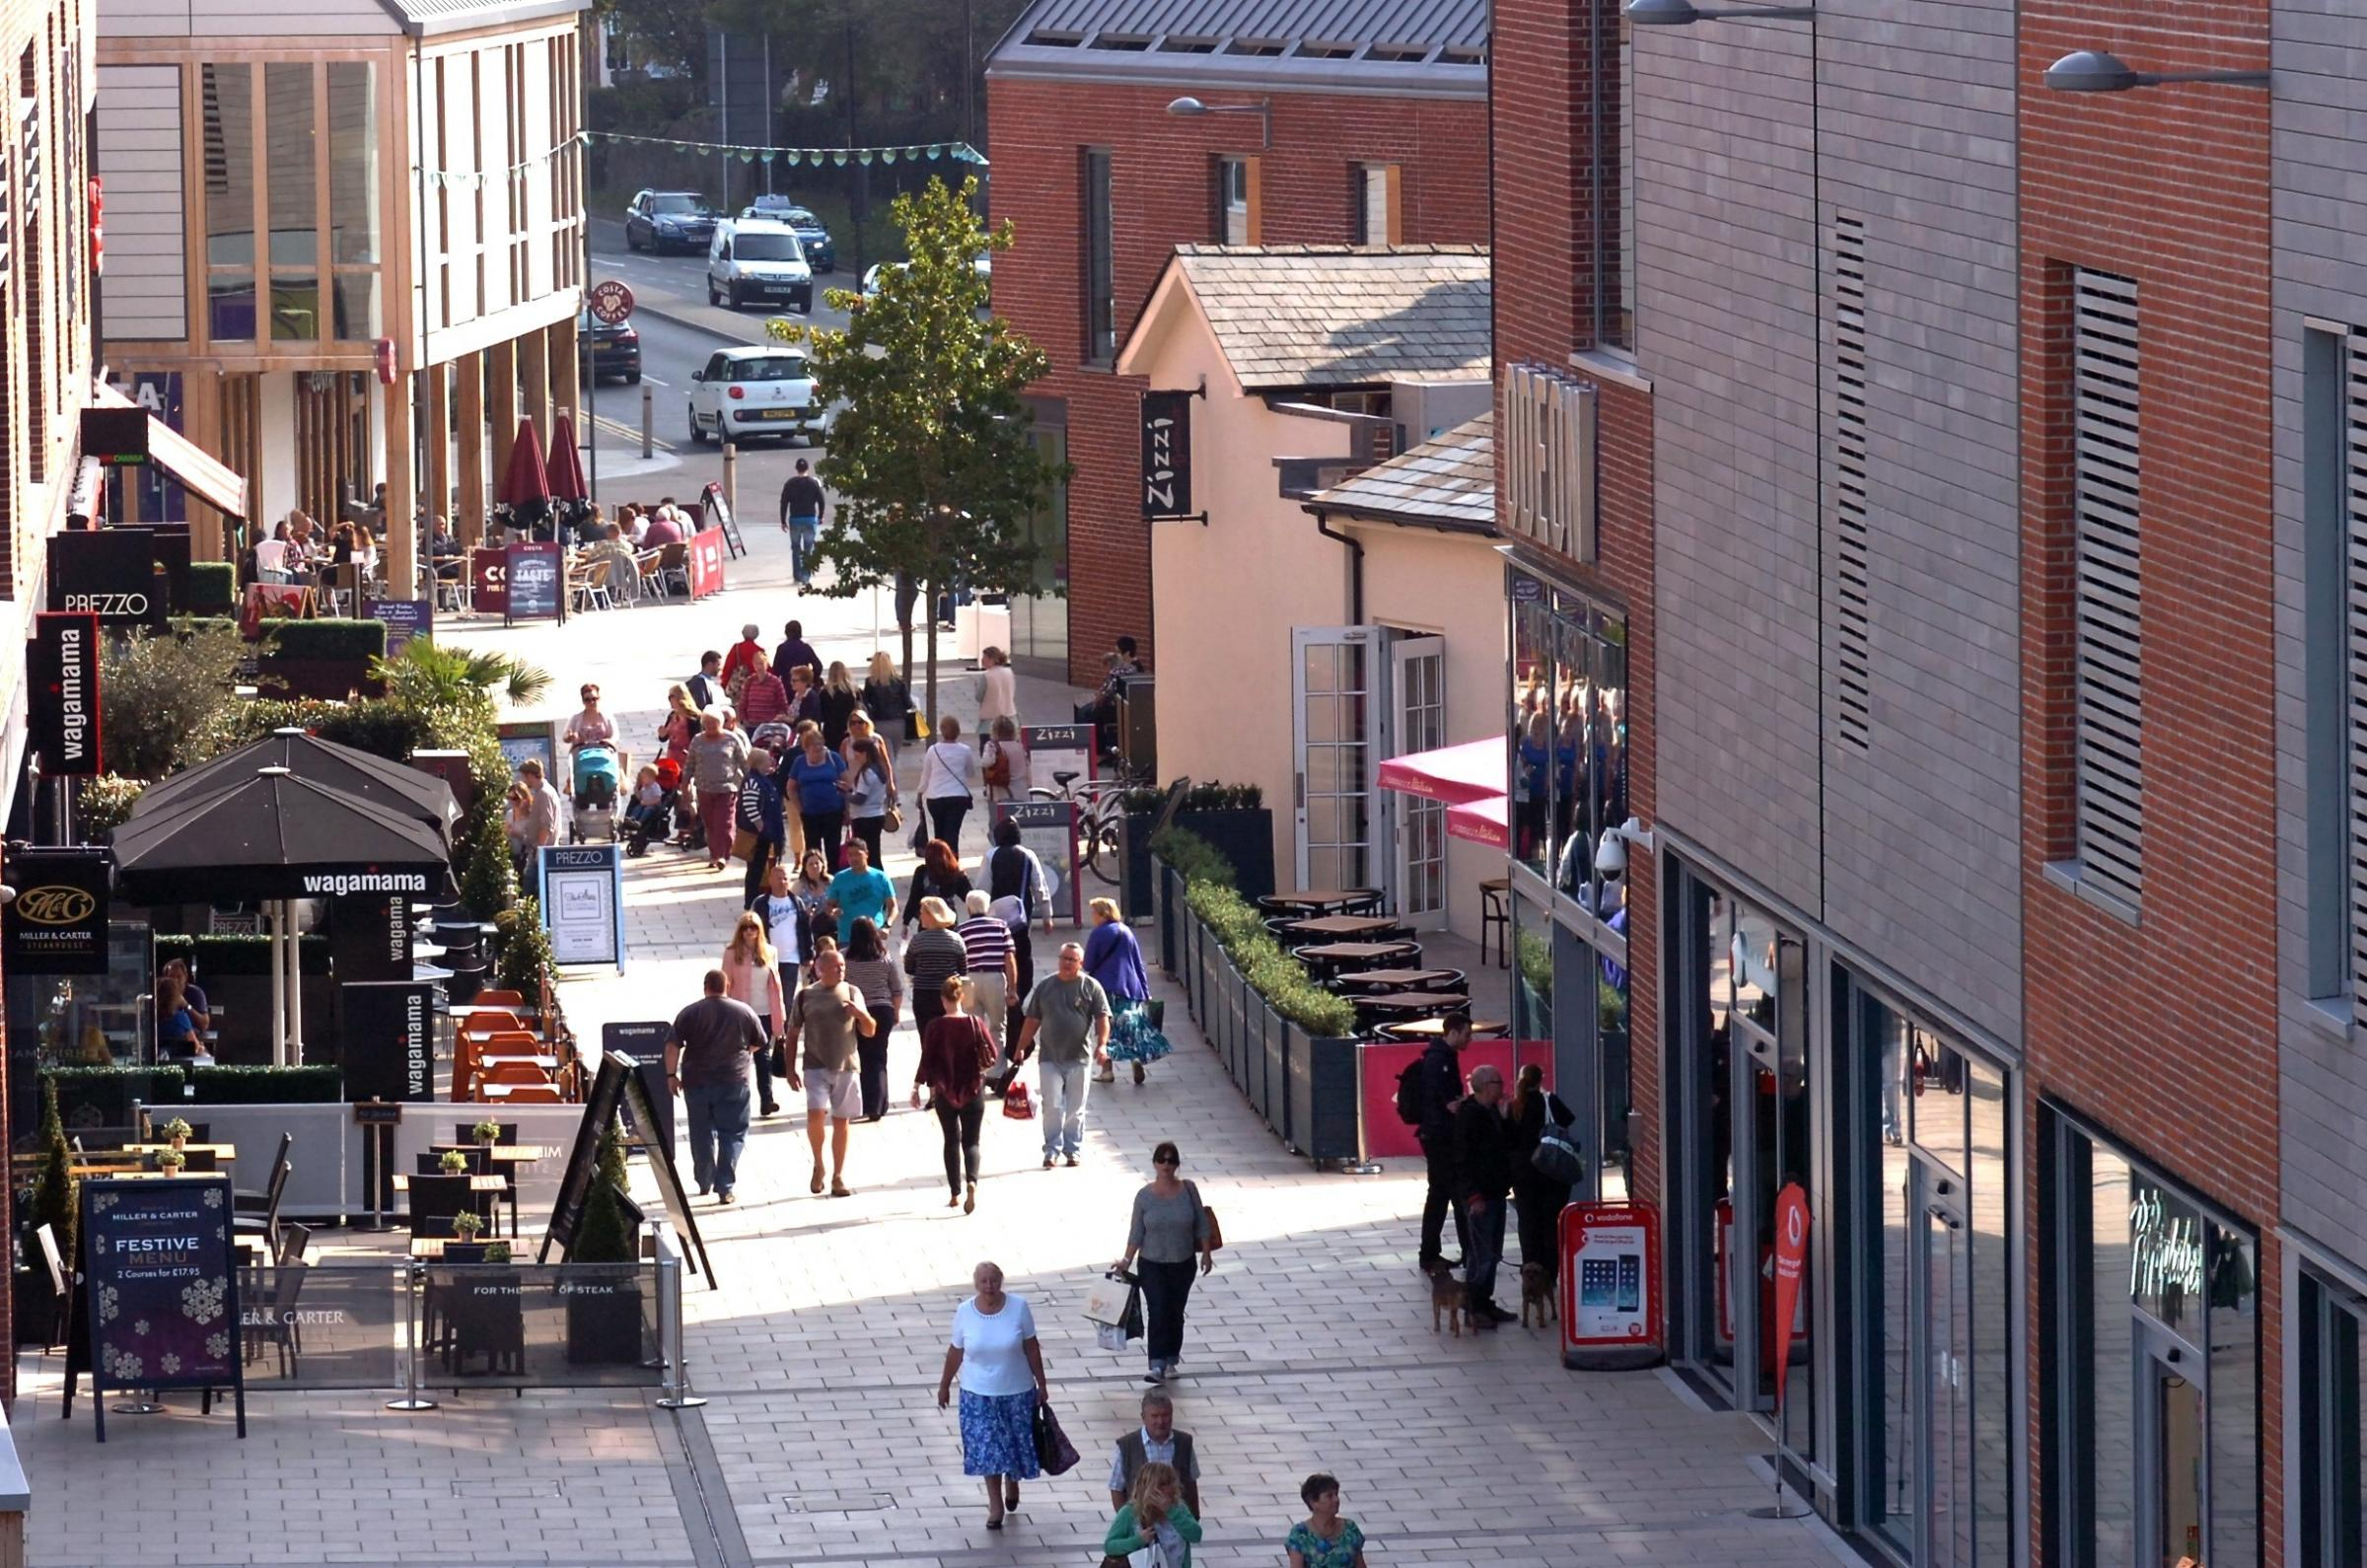 Hereford's Old Market development will provide free car parking during the Christmas late night shopping